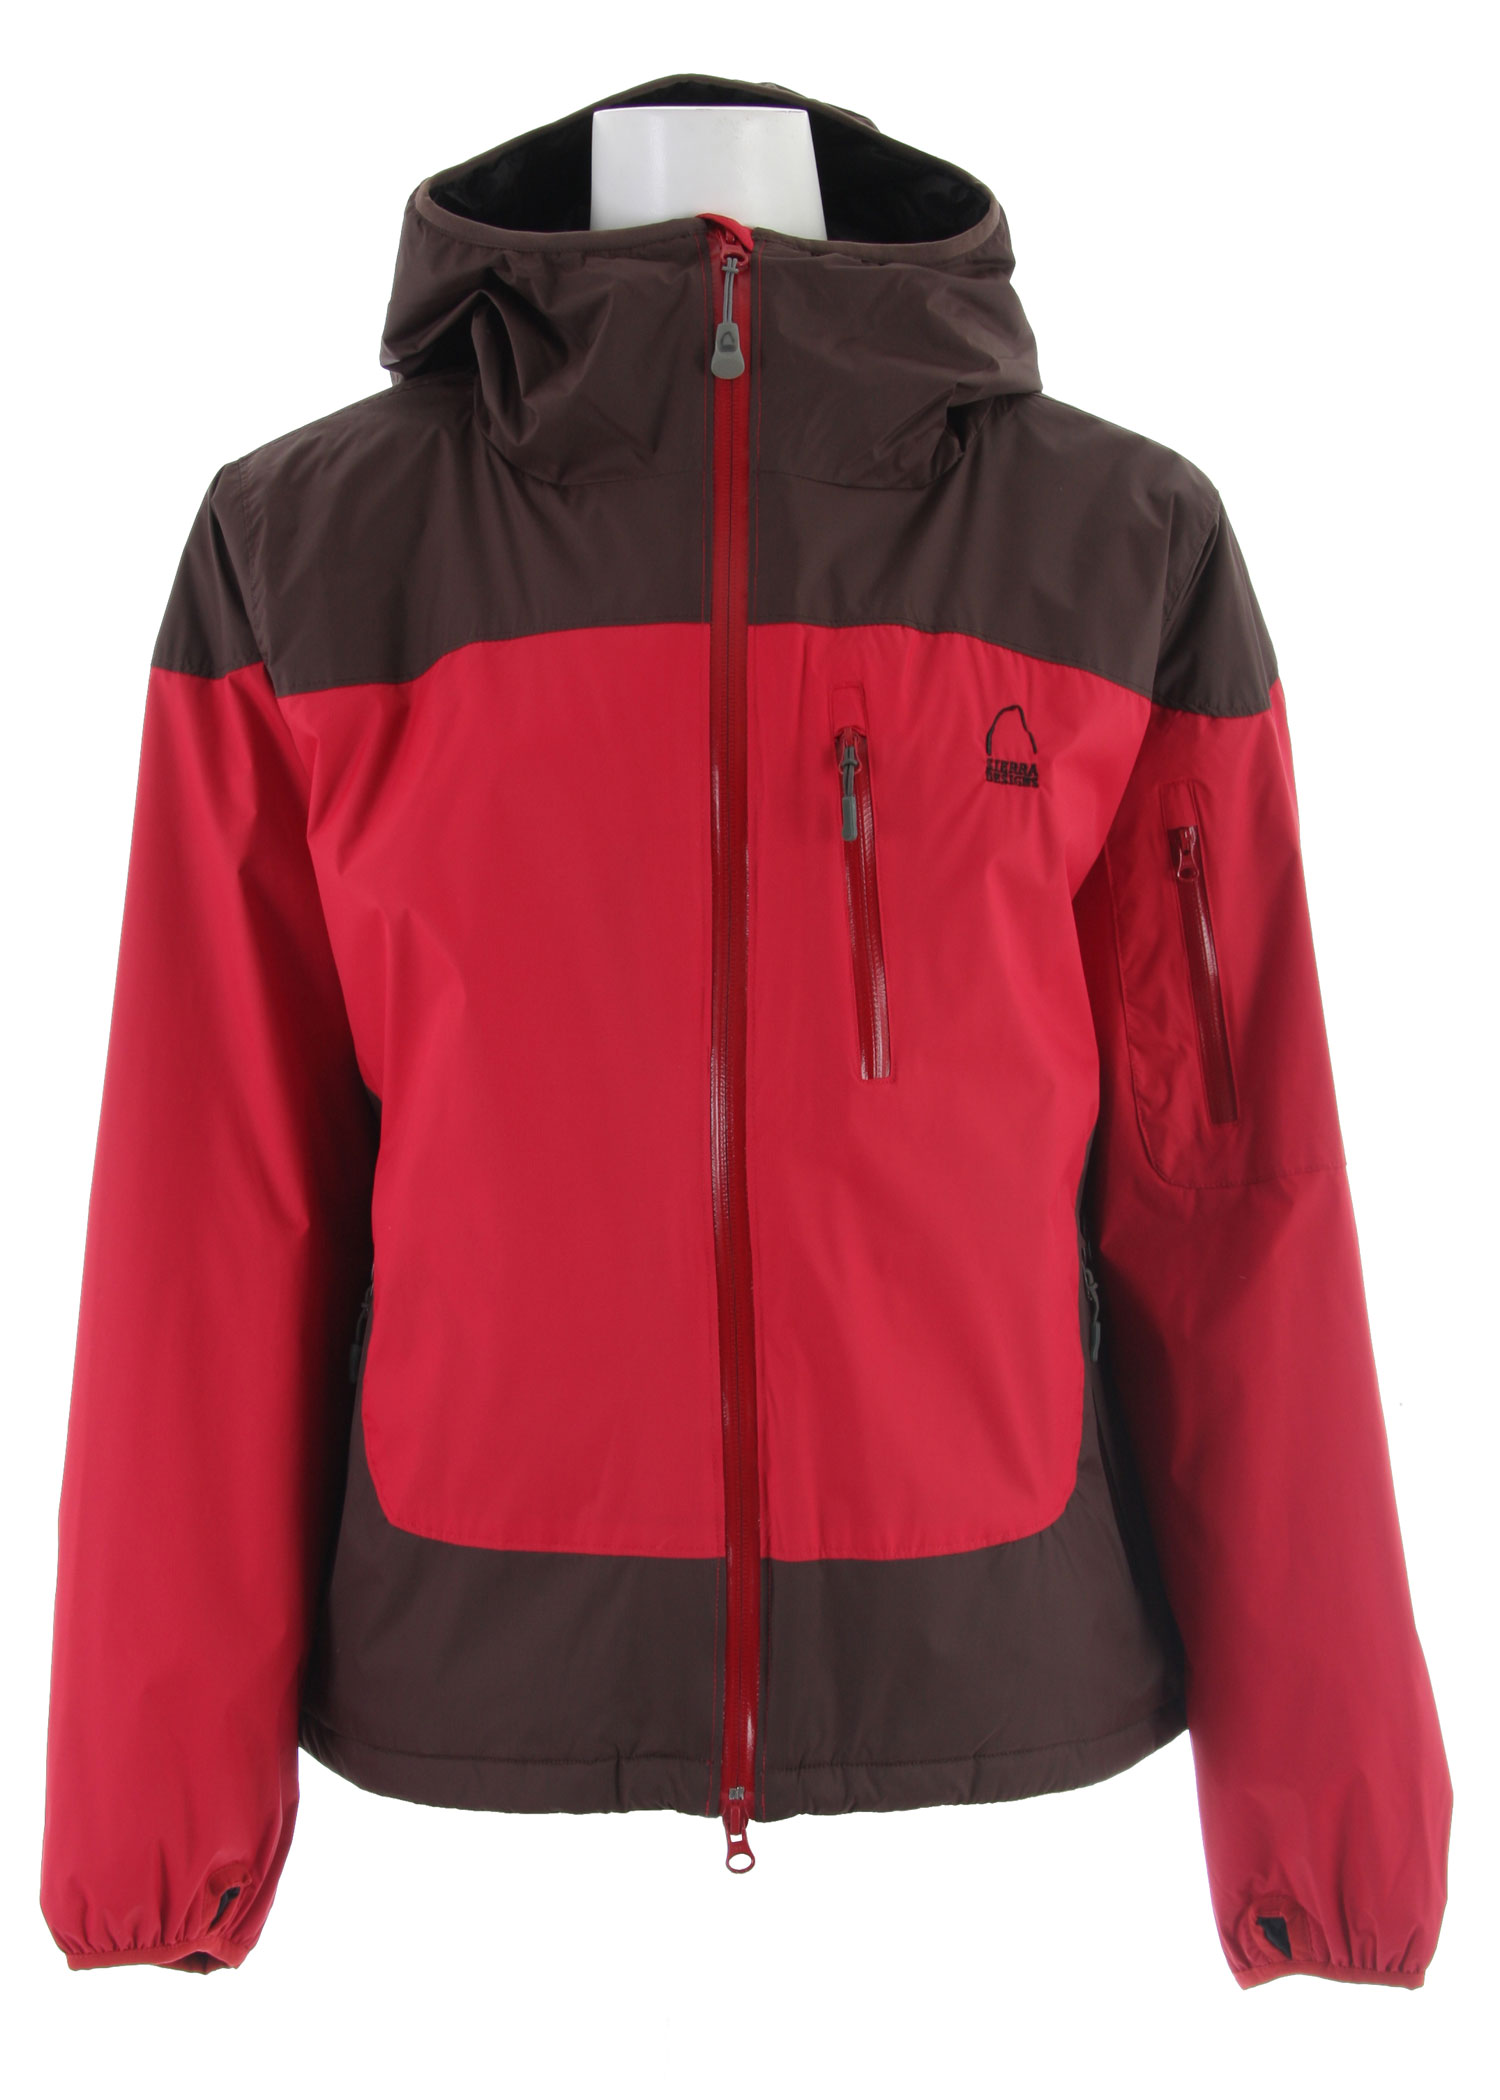 "The durable waterproof shell with a lightly insulated lining. Offering a built-in extra layer, the Sierra Designs Chockstone Insltd Shell Jacket provides an extra layer of warmth while remaining breathable to keep from over heating.Key Features of the Sierra Designs Chockstone Insltd Shell Jacket: 10,000mm Waterproof 6,000g Breathability 100g Primaloft Eco in Body & 60g Primaloft Eco in Sleeves 100% Polyester Taffeta Lining 1 Interior Zippered Pocket & 2 Interior Dump Pockets Interior Tricot Chin Guard Center Front Storm Flap Exposed Waterproof Zippers Condor Construction Helmet Compatible, Adjustable, Elasticized Hood Adjustable Hem Elasticized Cuff with Thumbhole Center Back Length: 27 1/2"" Weight: 23 oz Tropozone 2L 100% Nylon Ripstop,55 g/m2, 40D, solvent free lamination - $79.95"